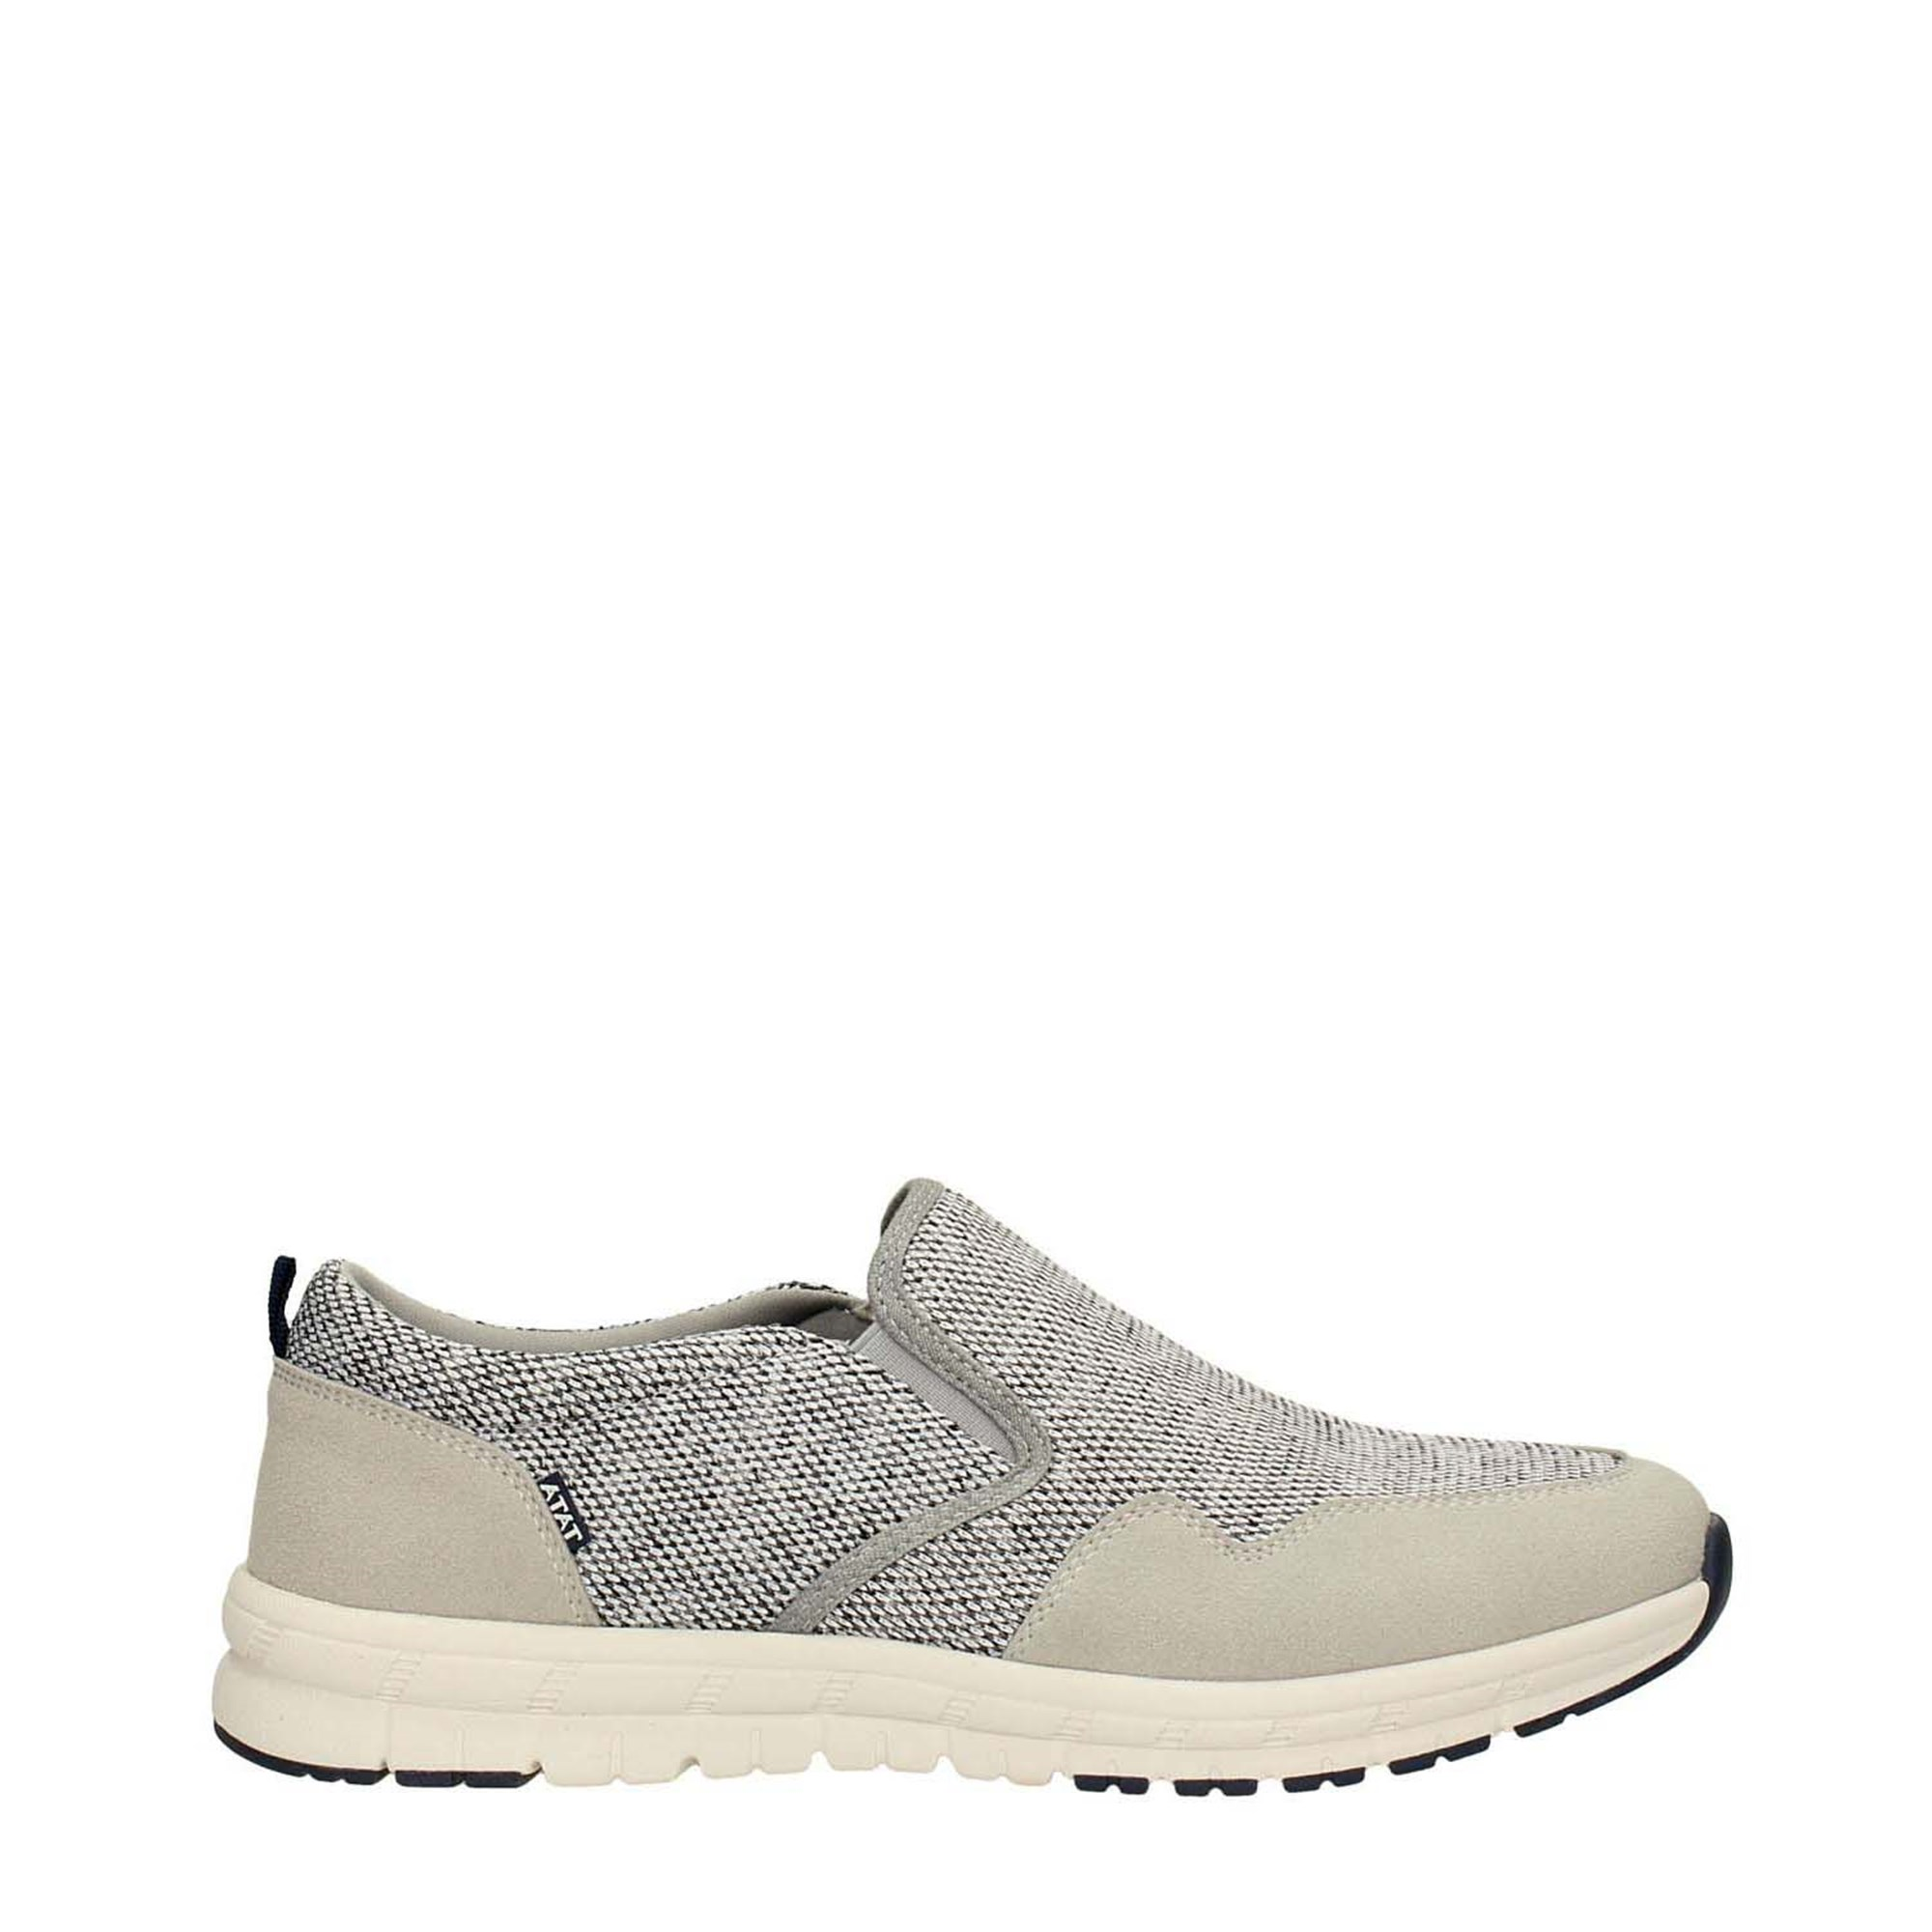 Tata Italia Shoes Man Slip On 903030